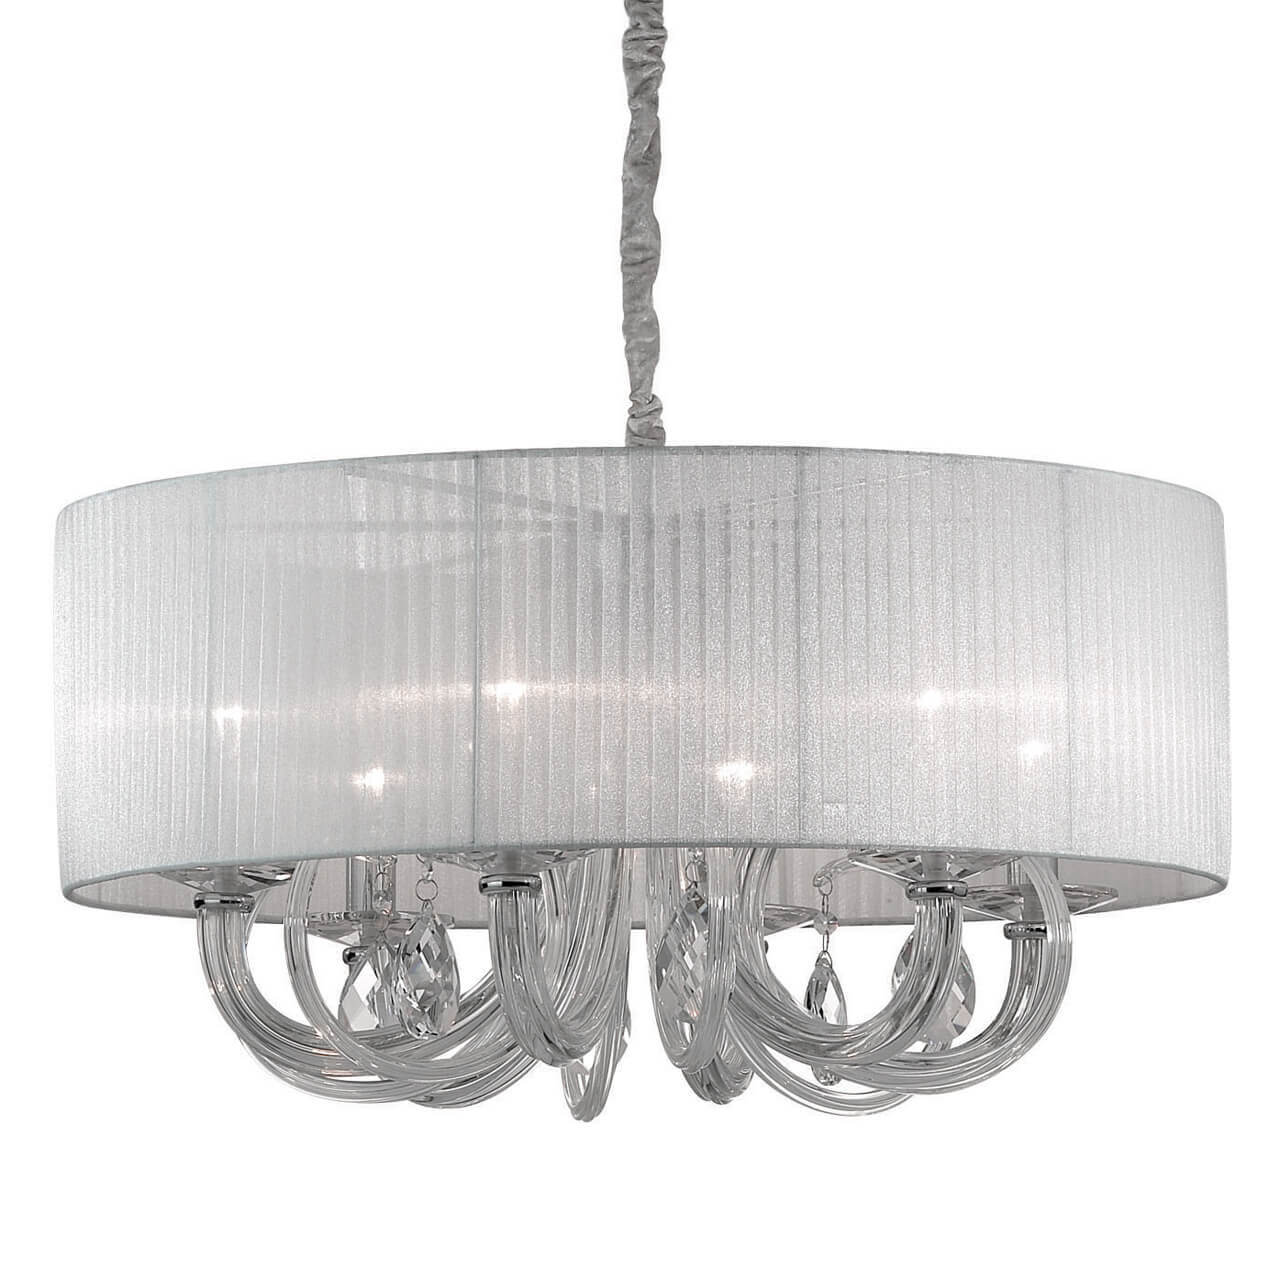 Люстра Ideal Lux Swan SP6 Bianco Swan фото